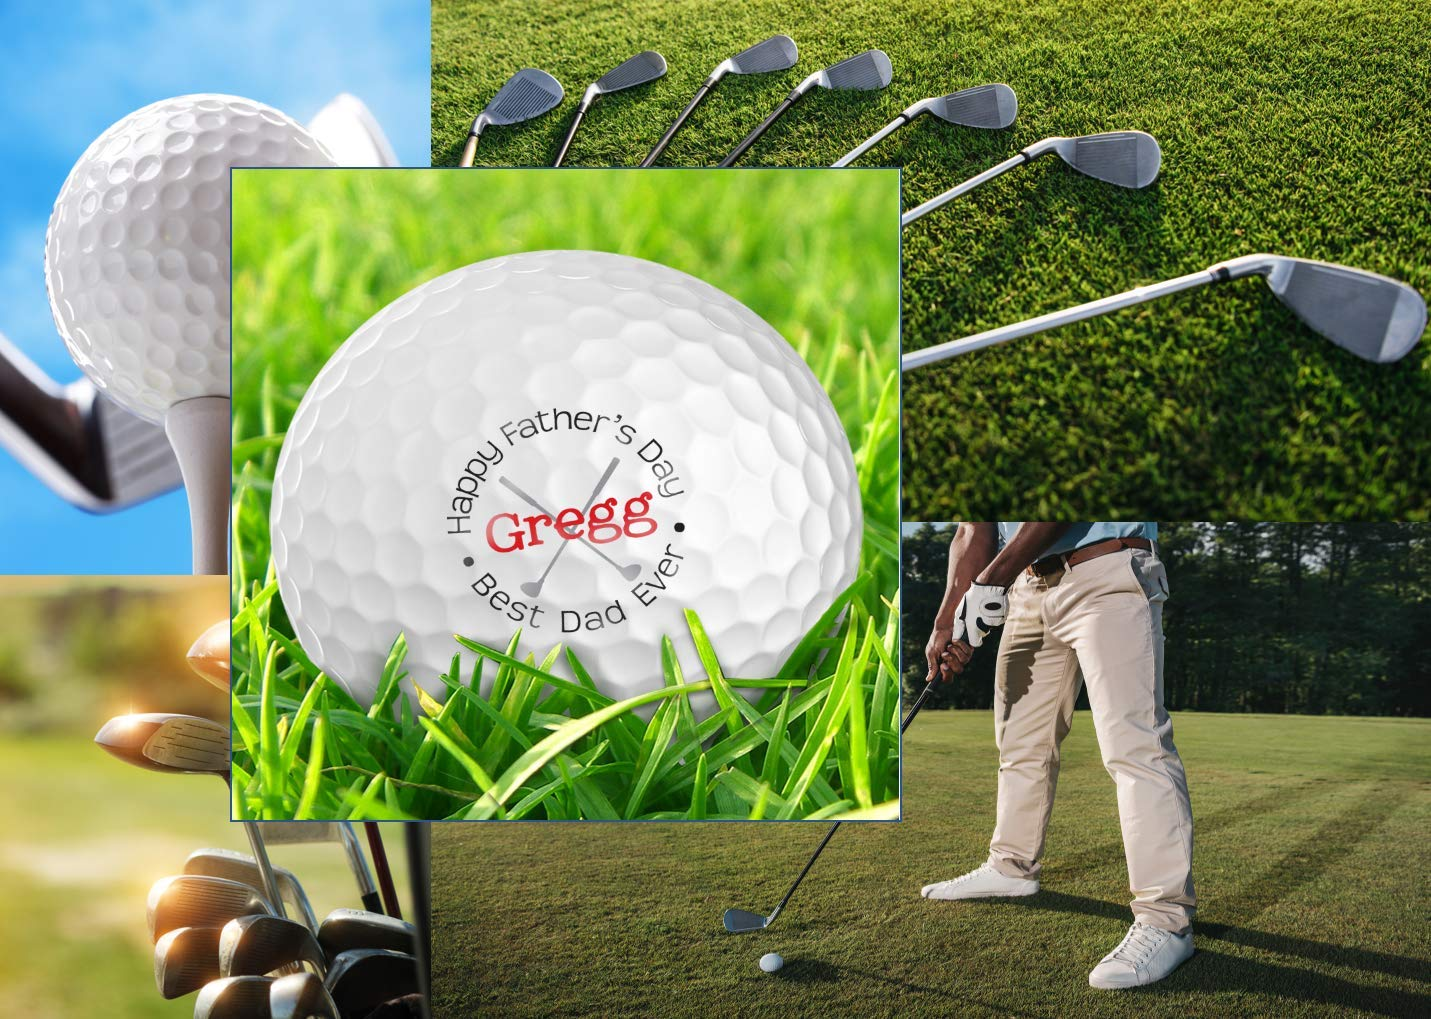 Infusion Father's Day Best Dad Ever Golf Balls - Personalize The Name (12 Balls)